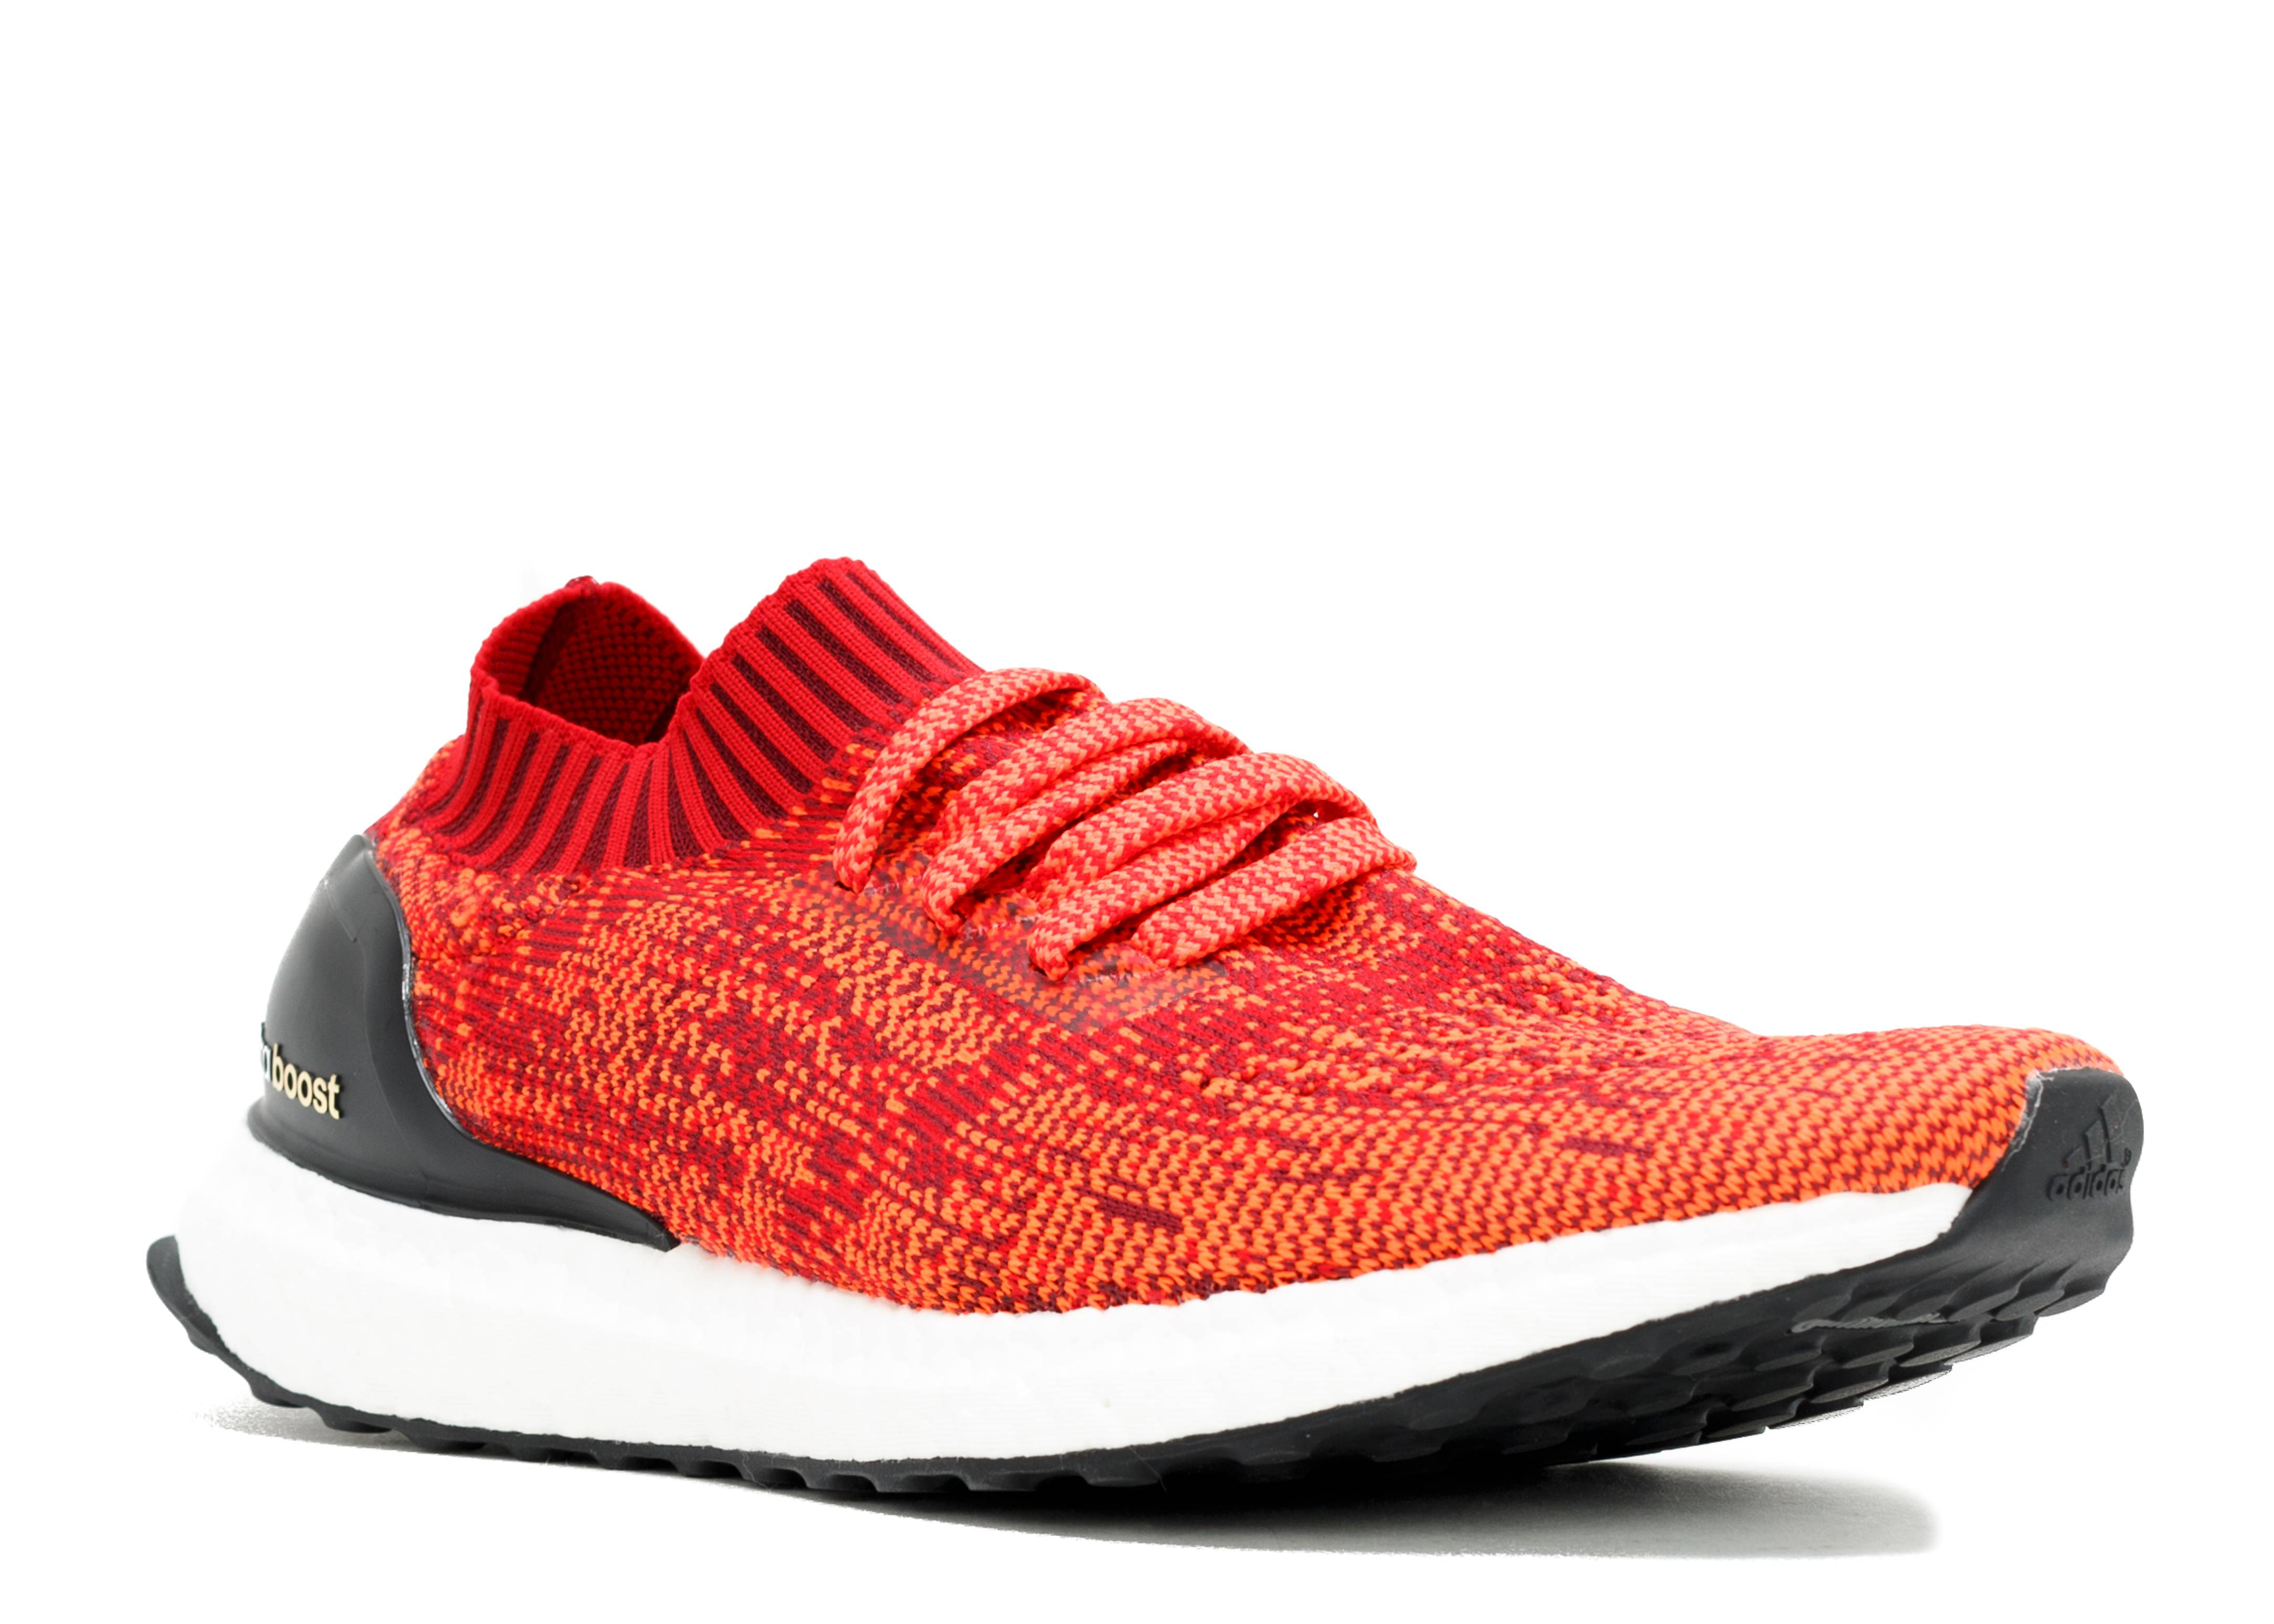 549d890beca1e Adidas Ultra Boost Uncaged Solar Red - 1